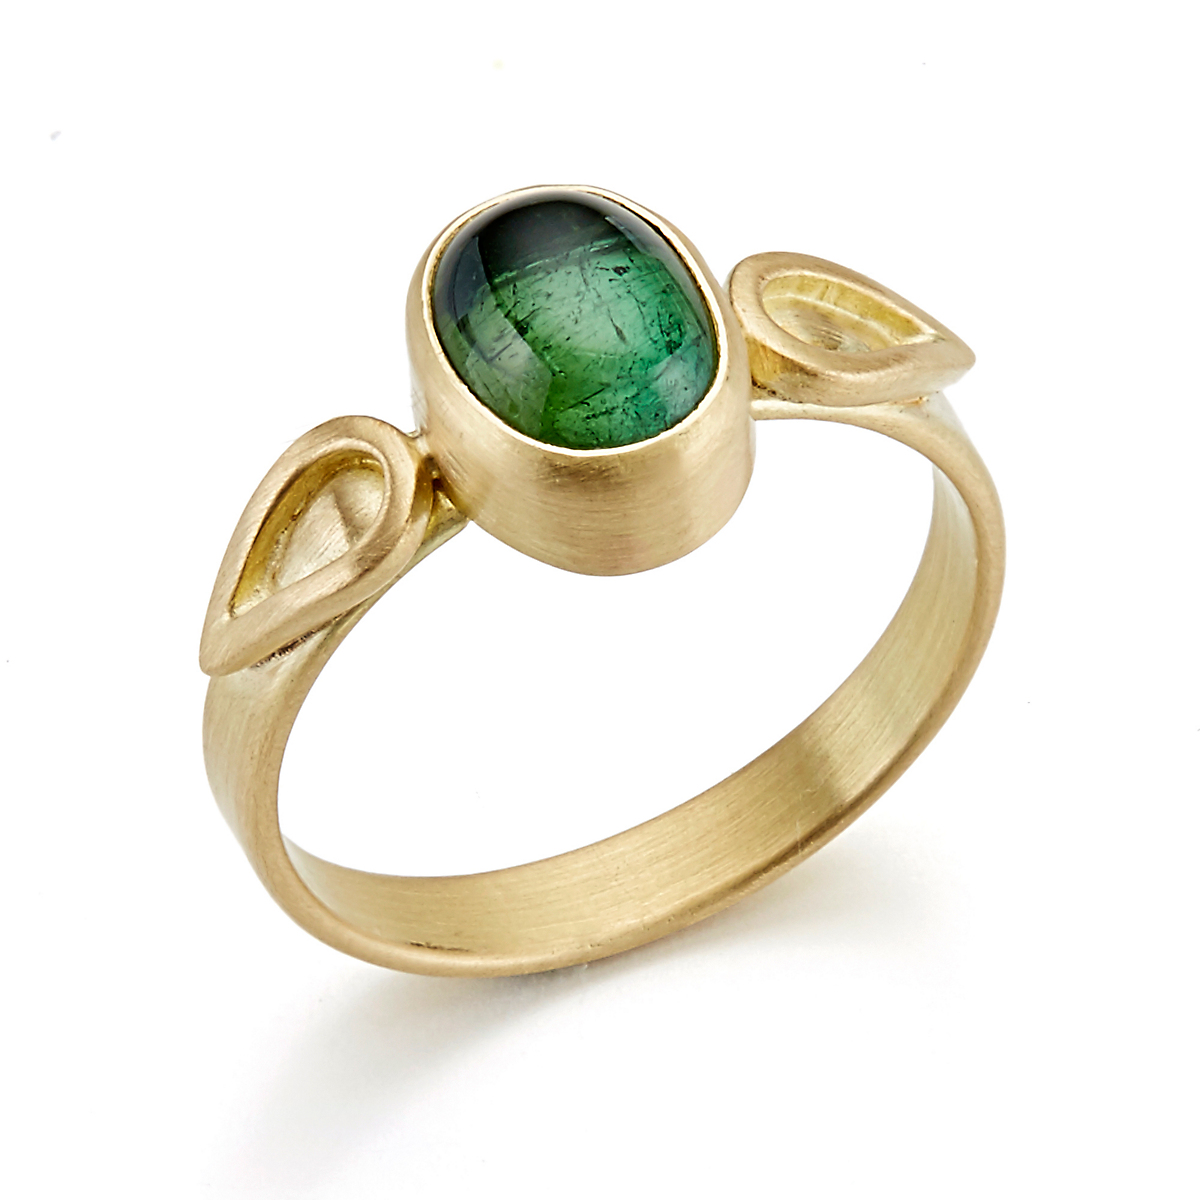 Monica Marcella Green Tourmaline Flame Ring